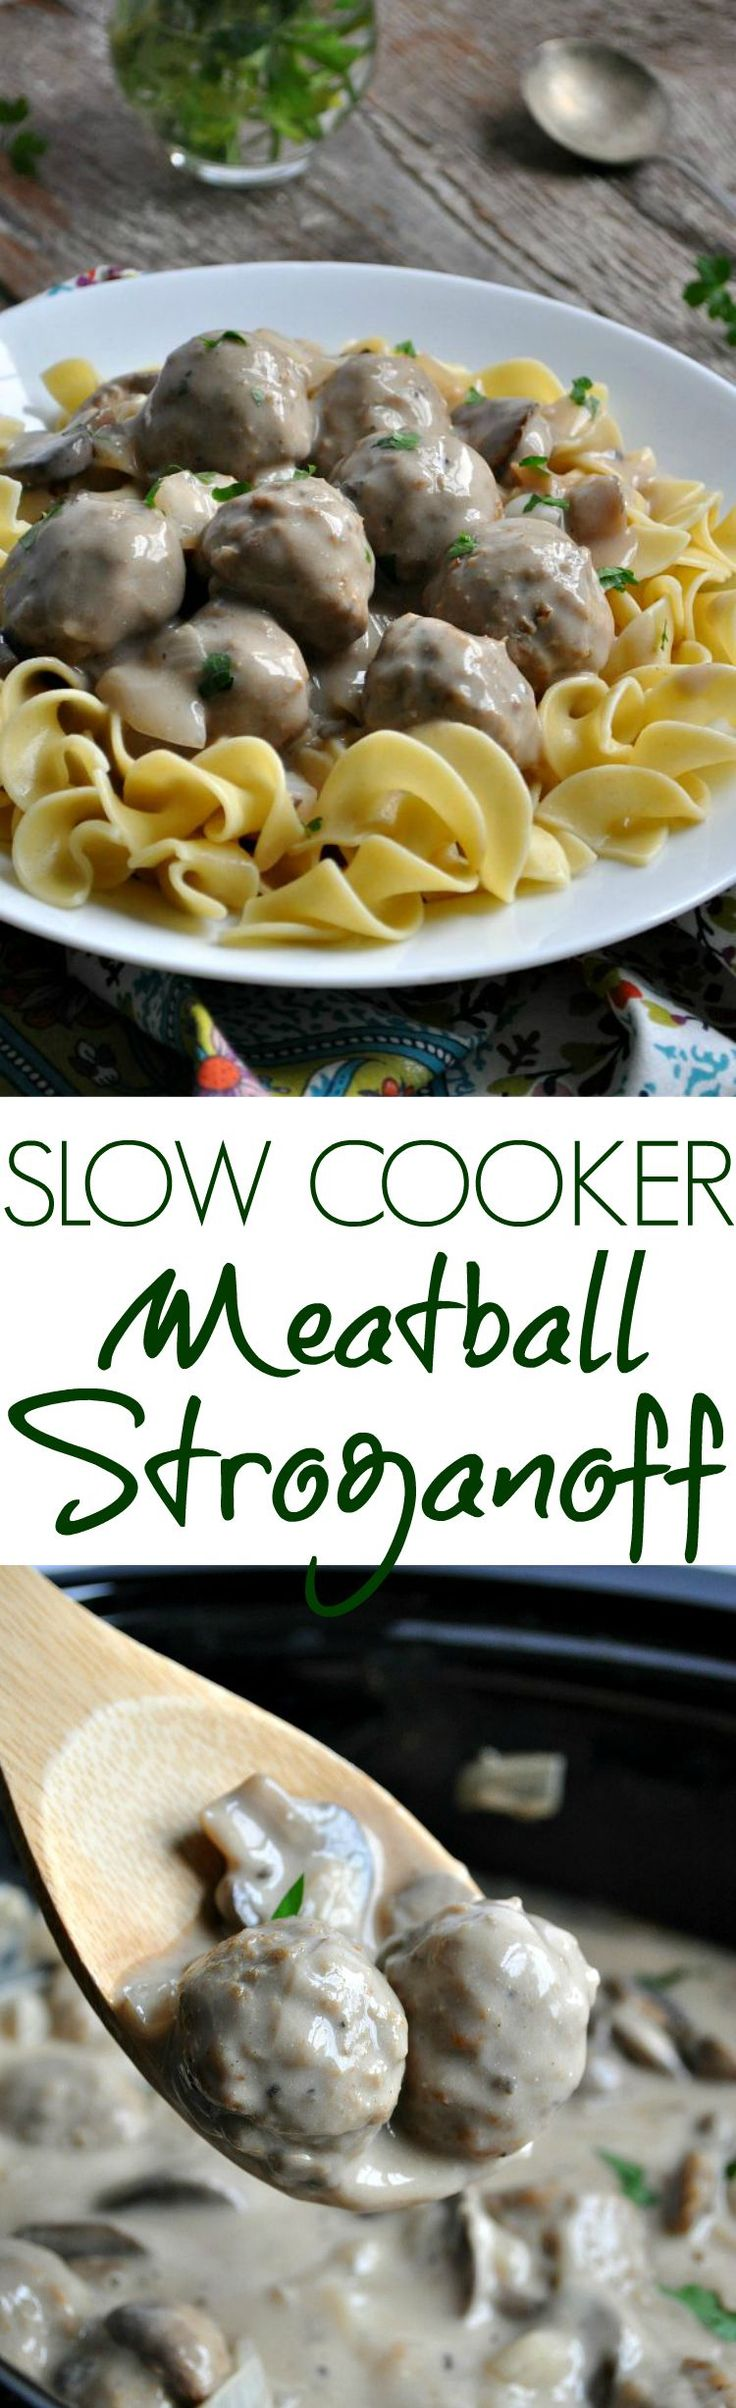 Slow Cooker Meatball Stroganoff - A classic comfort food just got easier! Let your Crock Pot do the work for this simple Slow Cooker Meatball Stroganoff, which only requires about 10 minutes of prep time. It's the perfect weeknight dinner recipe!